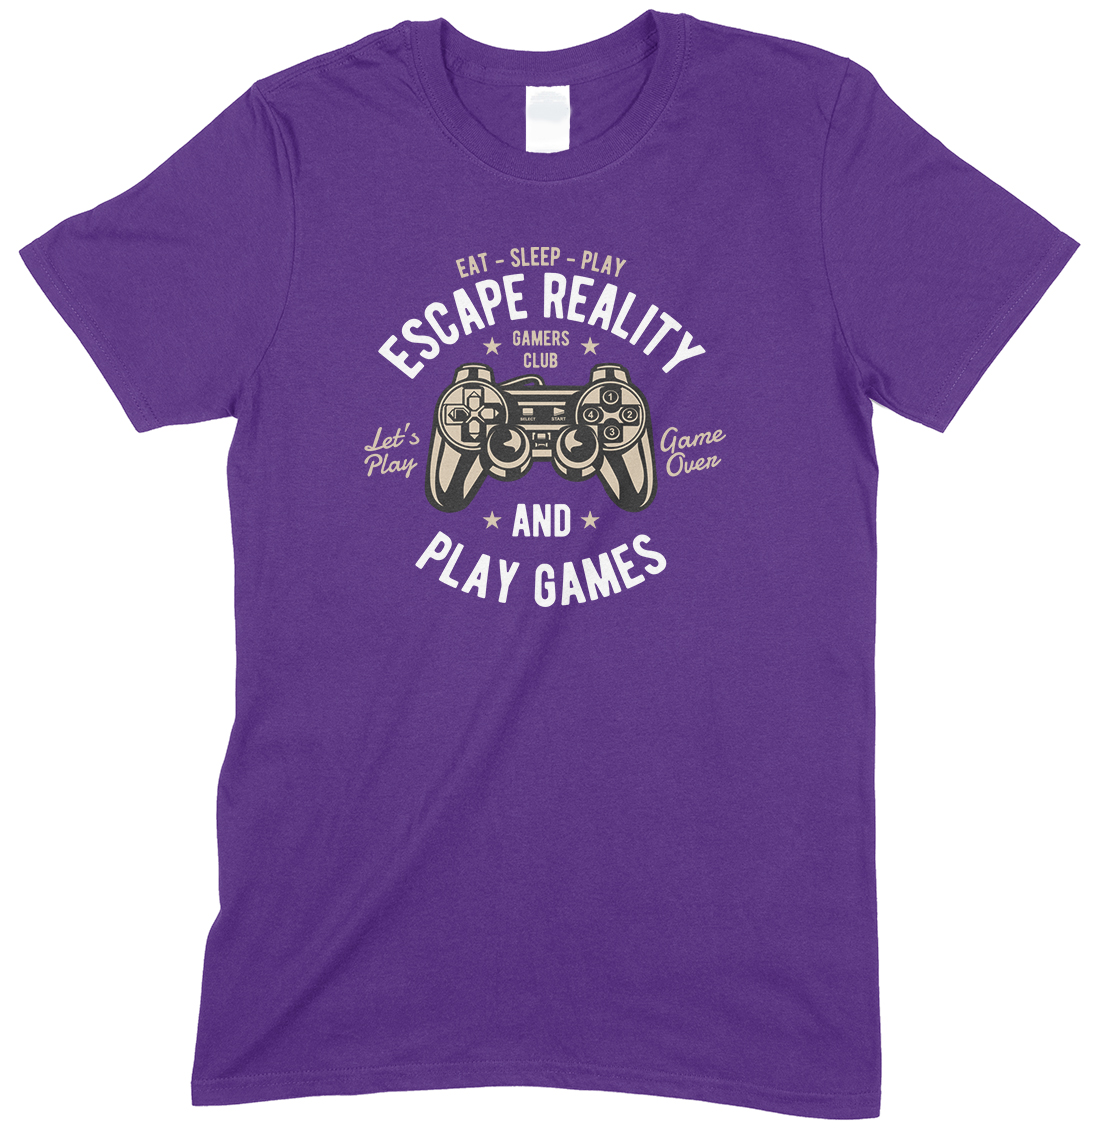 Eat Sleep Play Escape Reality and Play Games-Unisex Gamer T Shirt